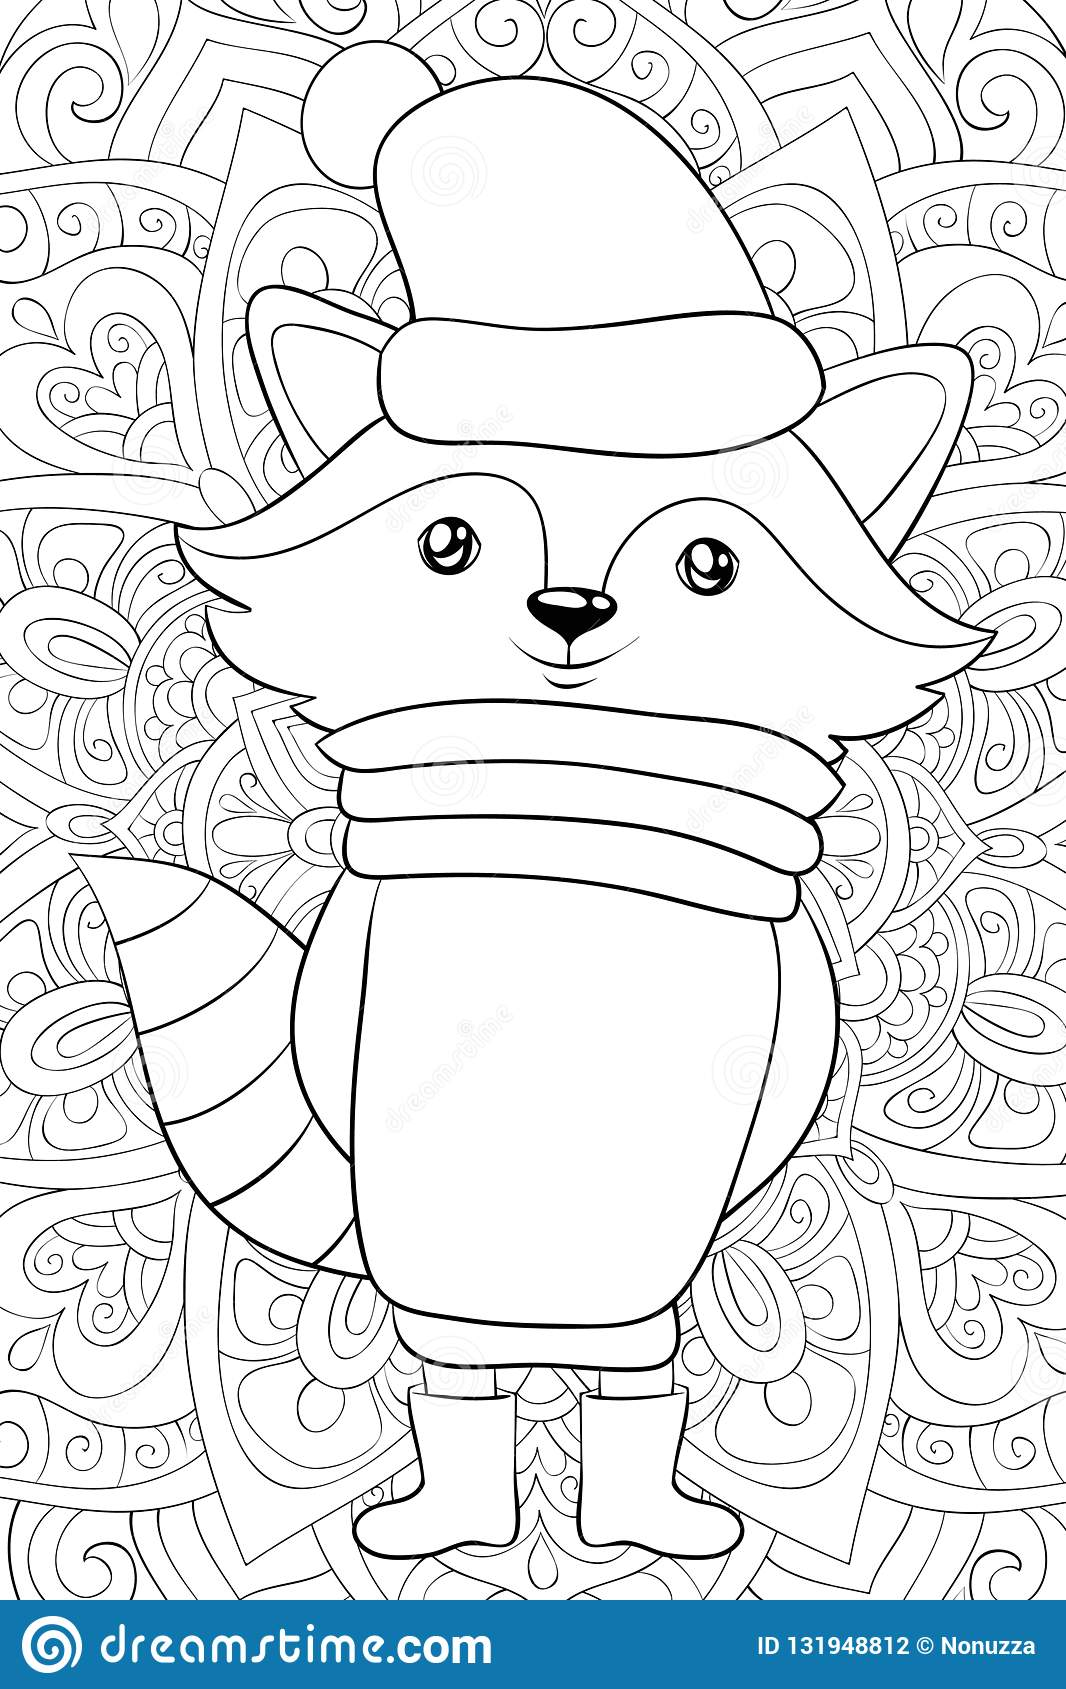 Adult Coloring Book Page A Cute Christmas Raccoon Image For Relaxing Activity Zen Art Style Illustration For Print Stock Vector Illustration Of Cartoon Christmas 131948812